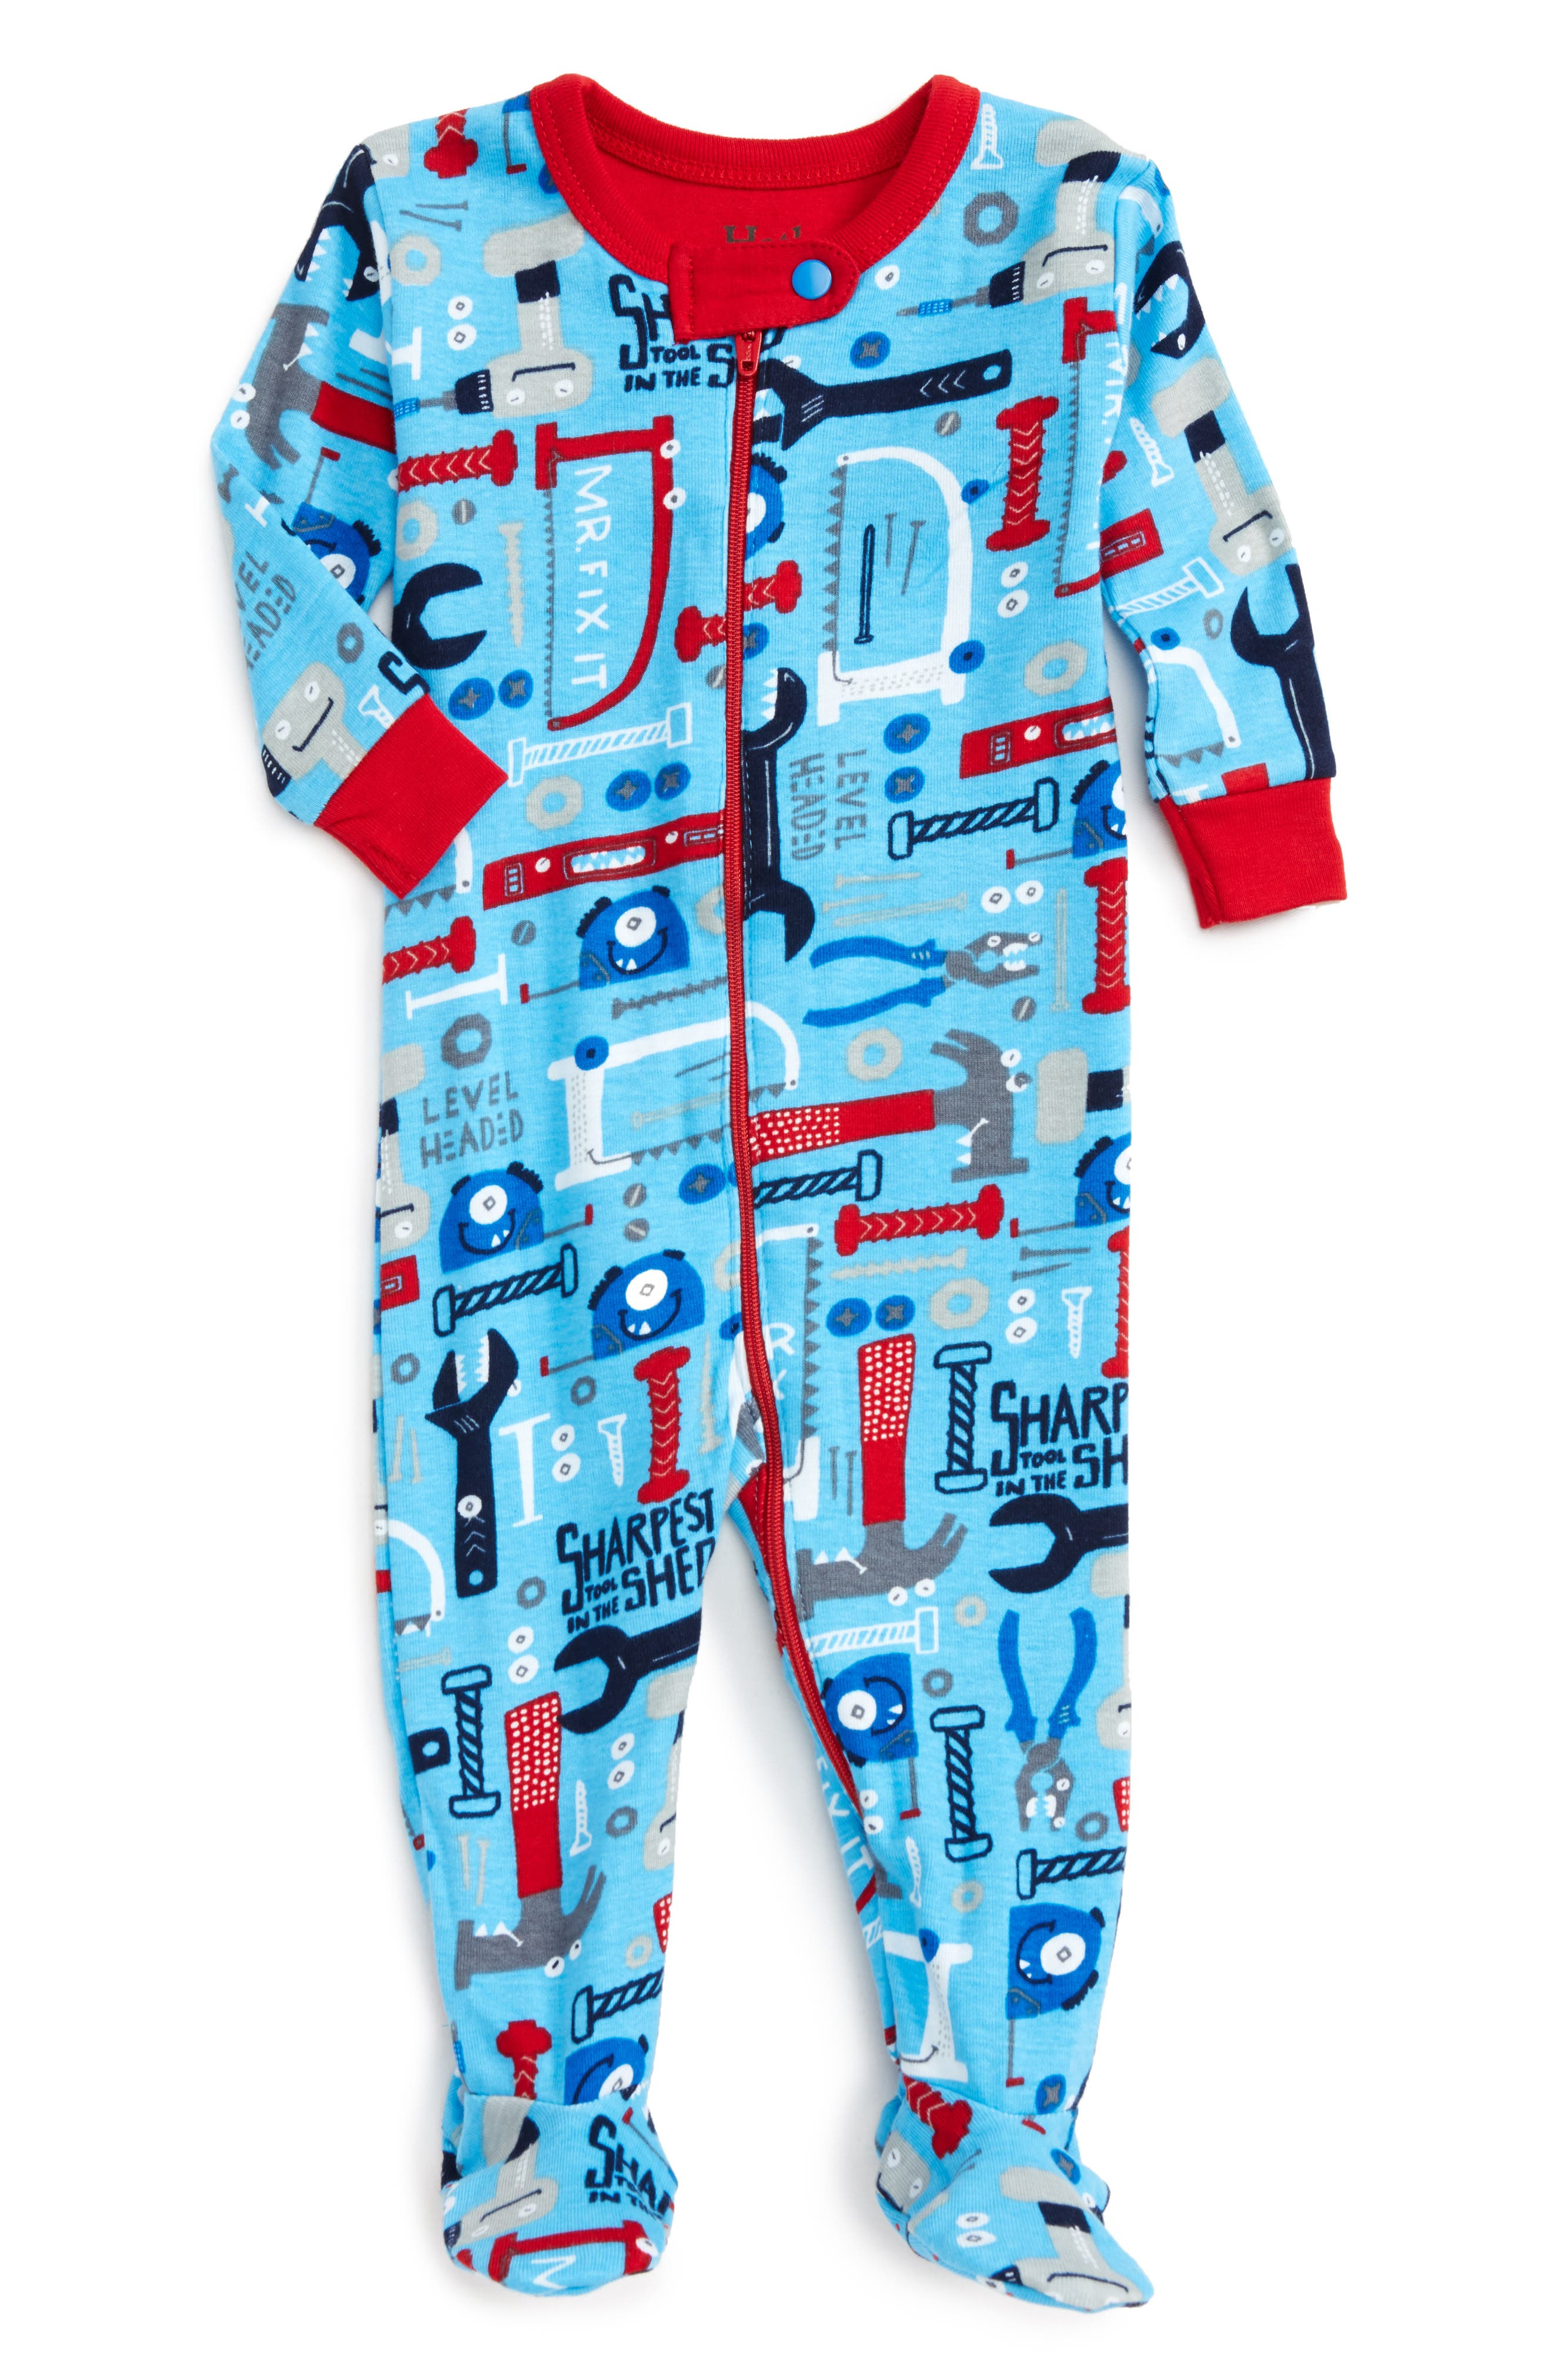 Alternate Image 1 Selected - Hatley Organic Cotton Fitted One-Piece Footie Pajamas (Baby Boys)